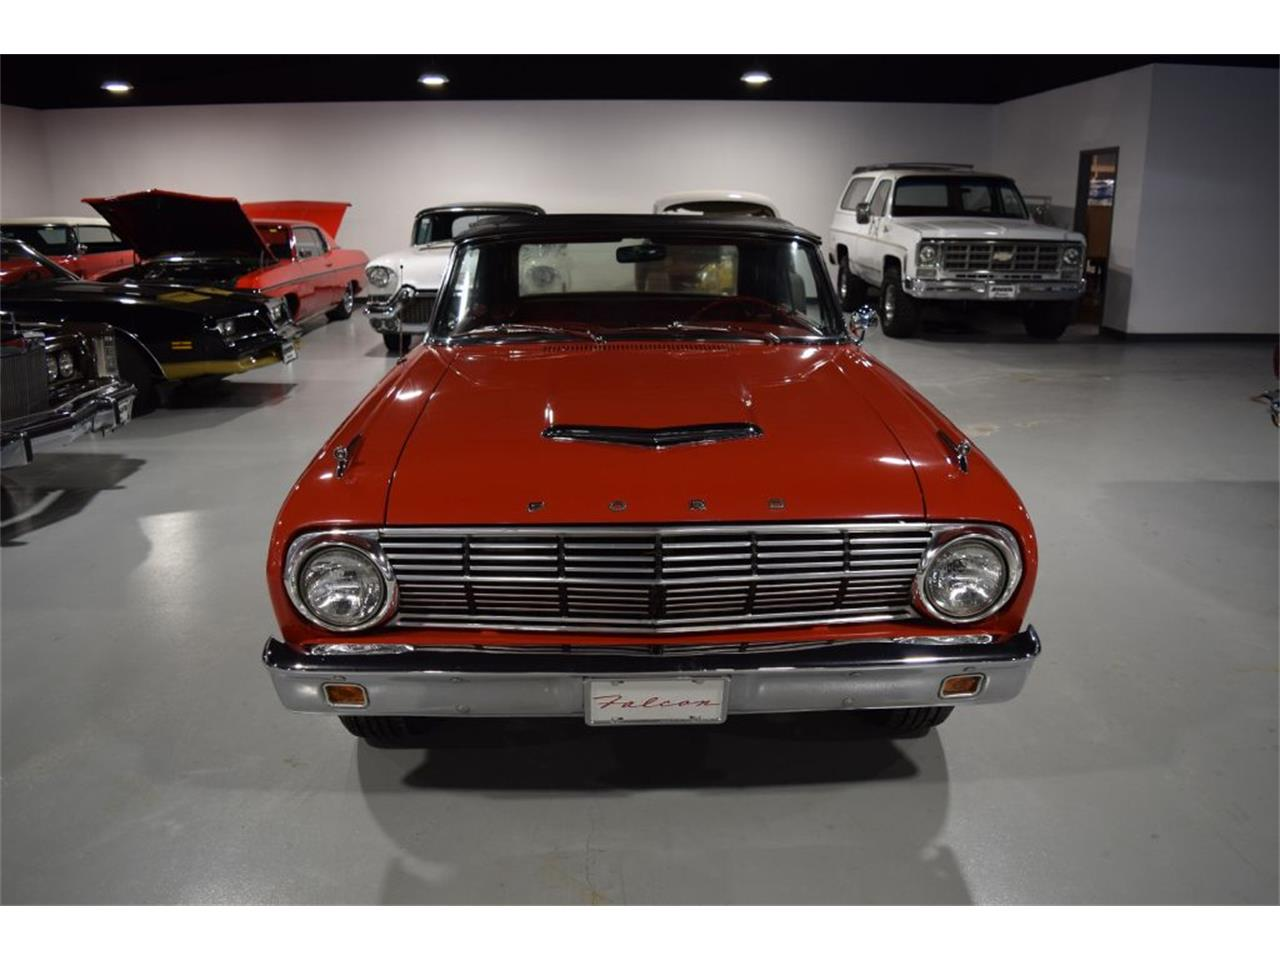 1963 Ford Falcon Futura for sale in Sioux City, IA – photo 26